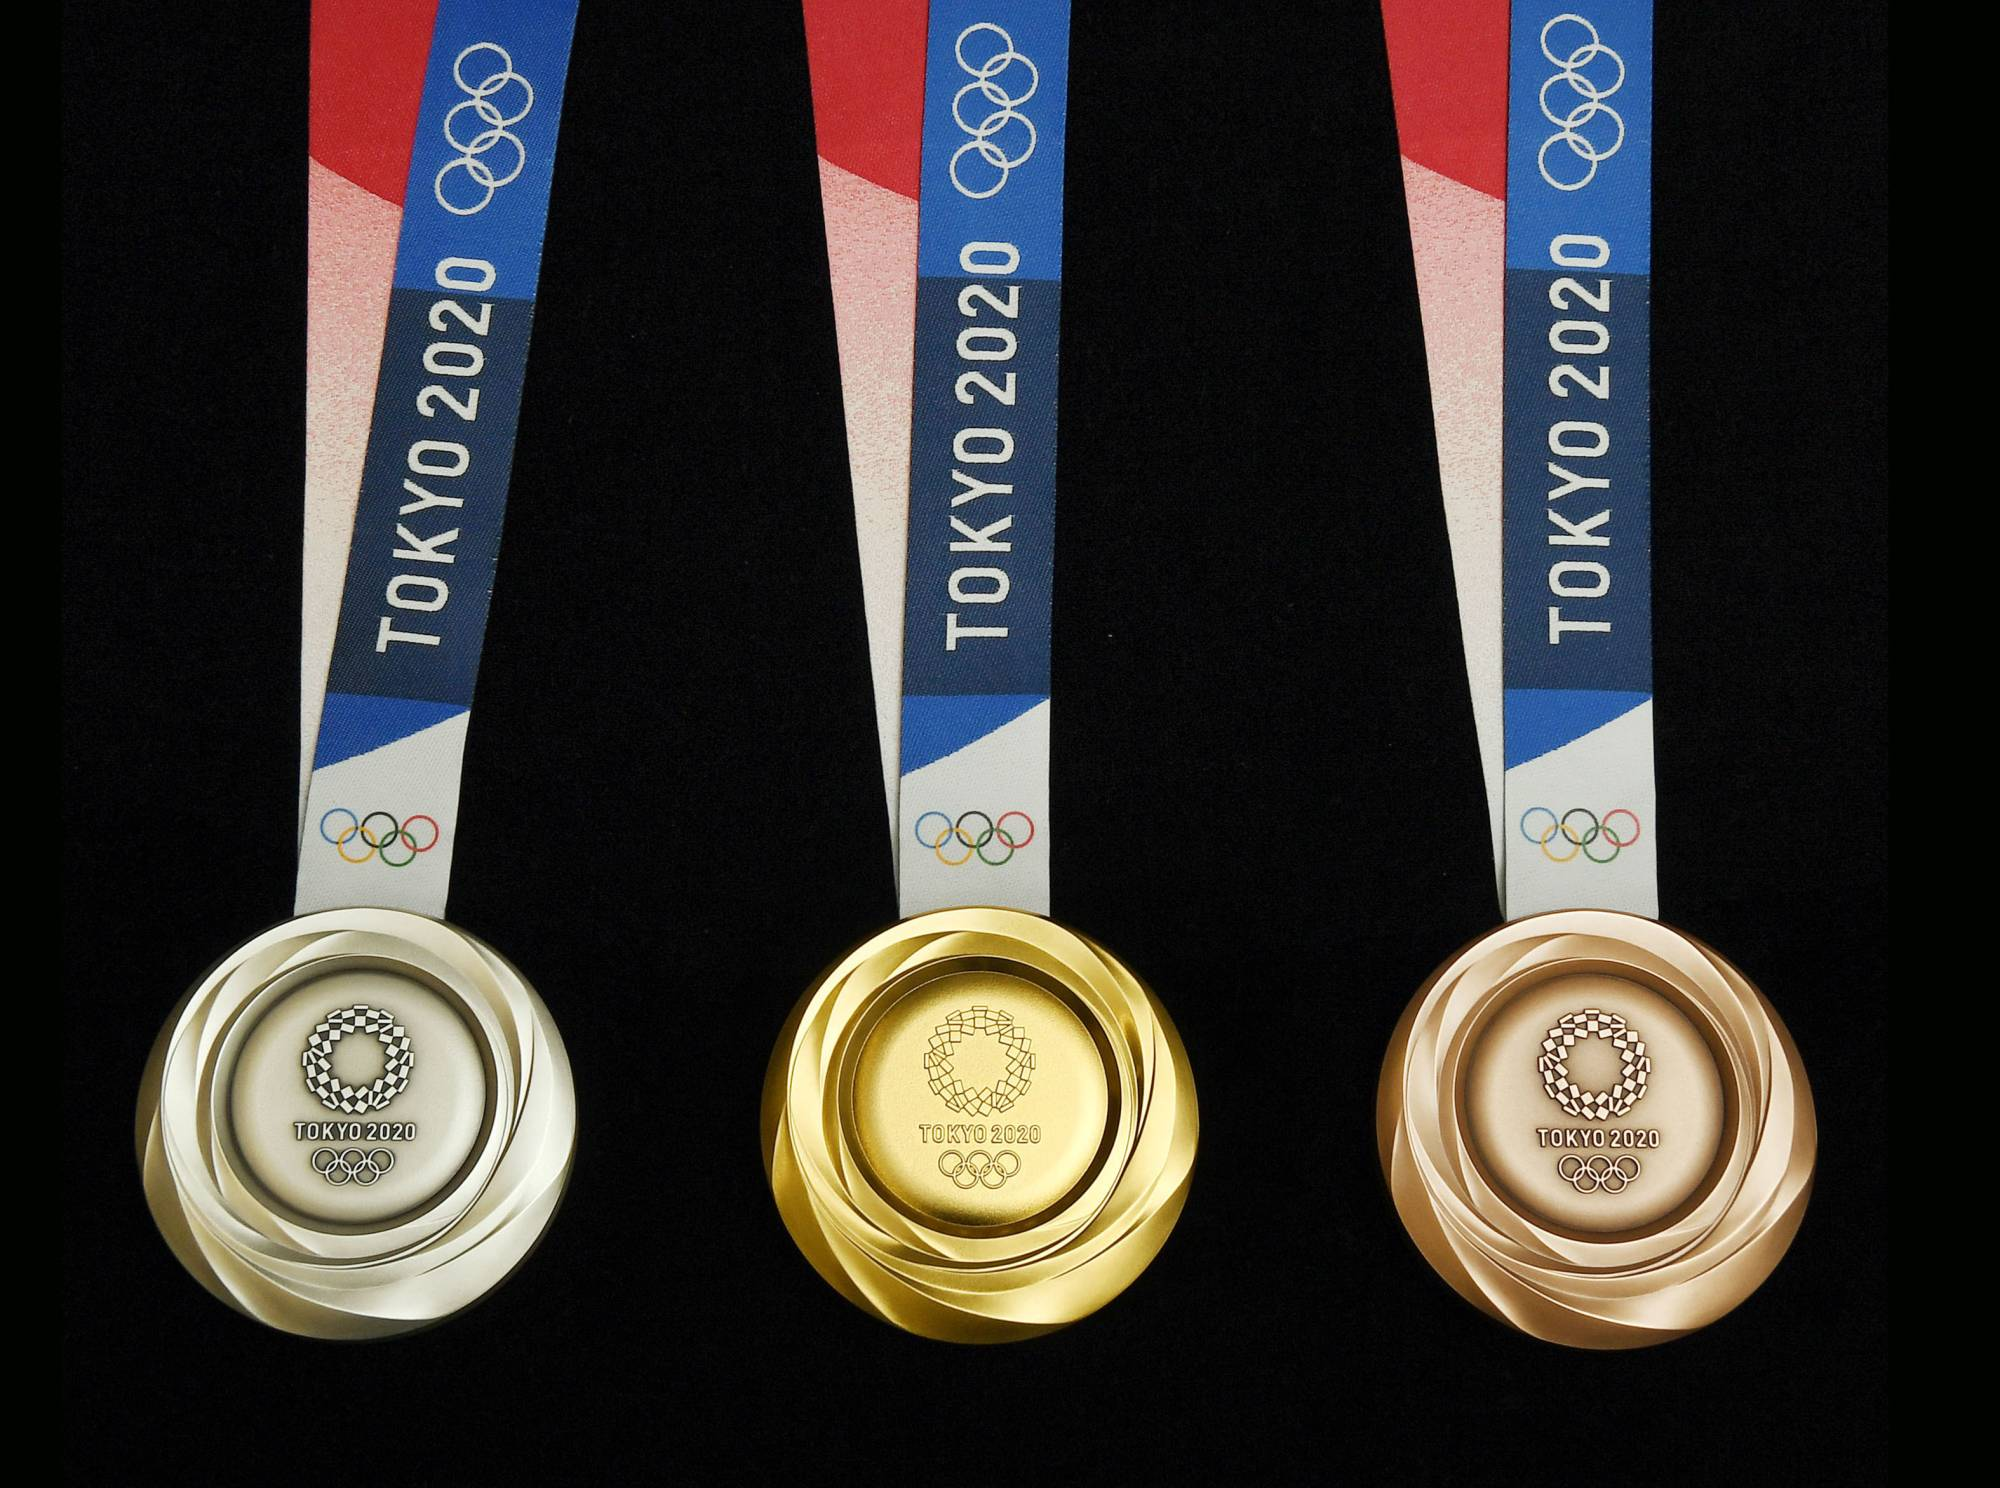 Japan set to win most gold medals at Olympics since 2004, analysts say    The Japan Times